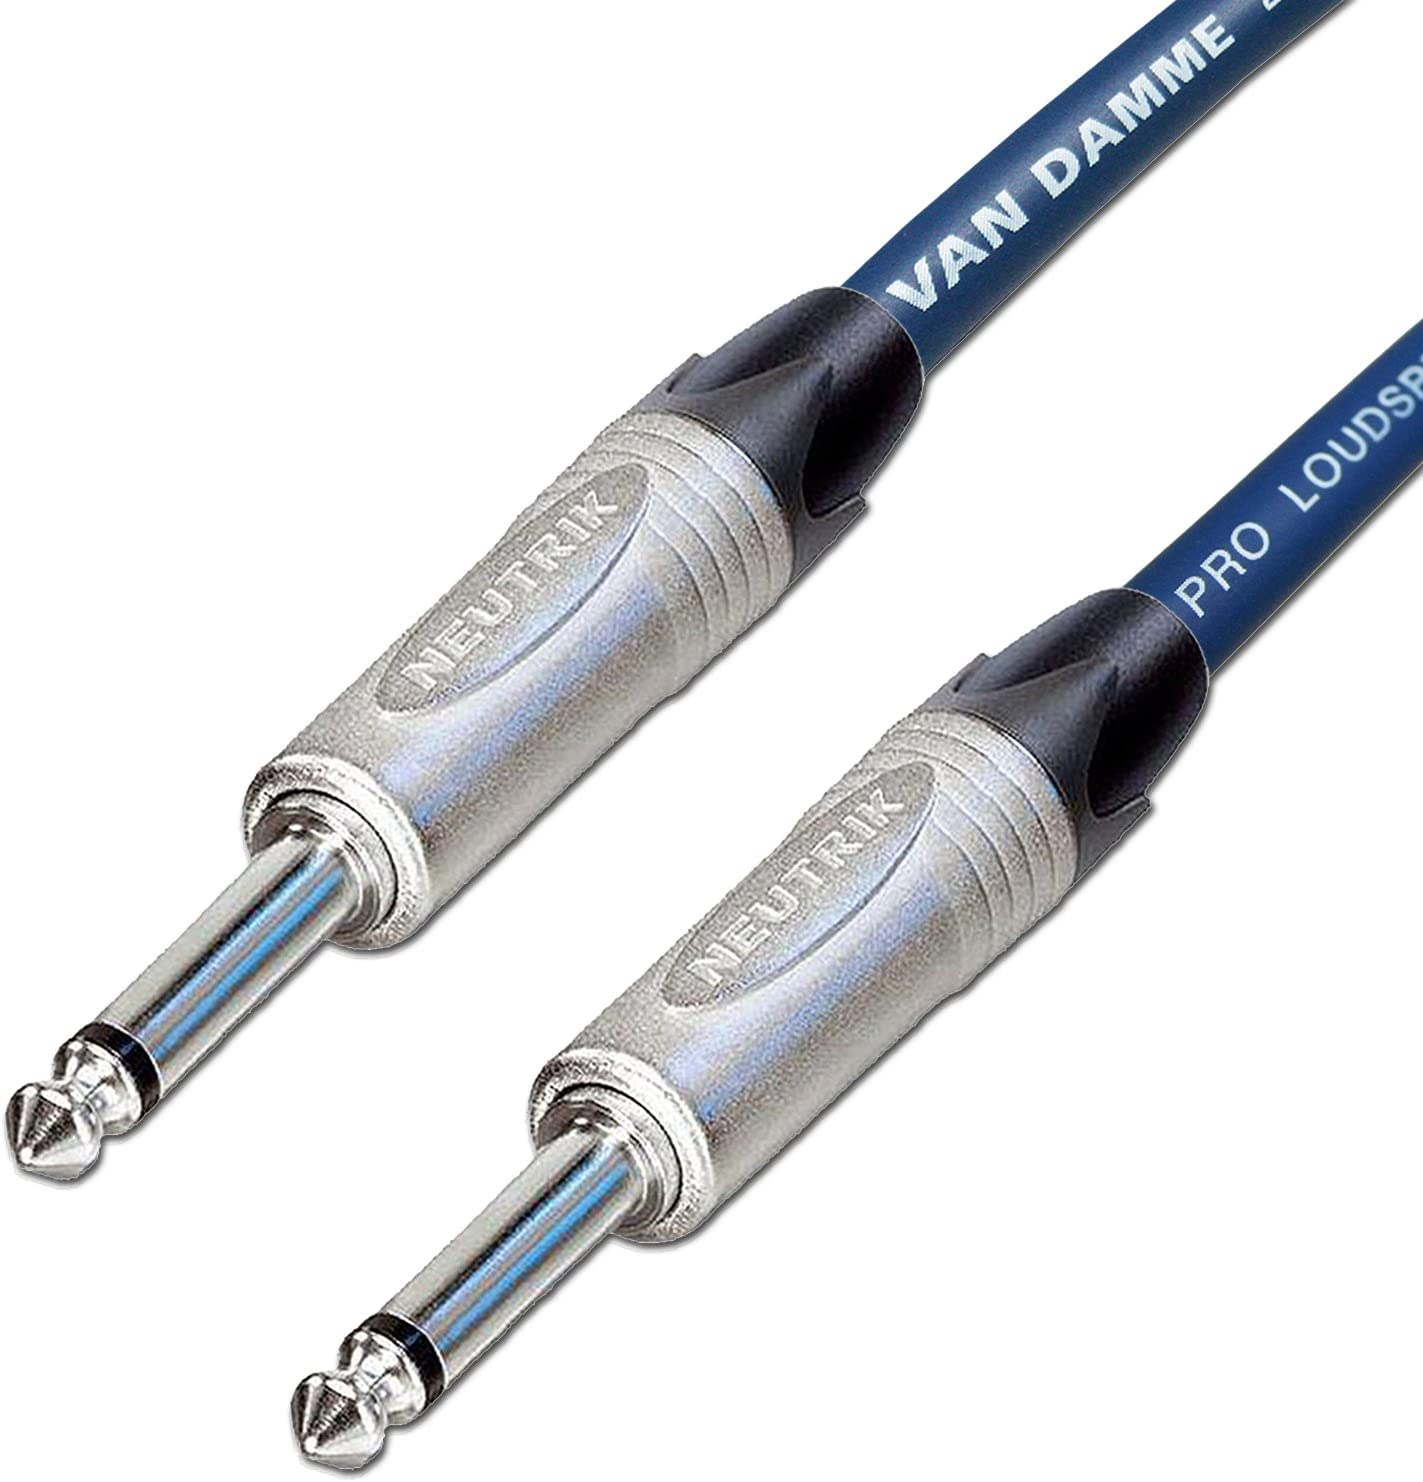 Van Damme Cable Guitar Lead Neutrik Straight to Right Angle Jack Plugs 3M White